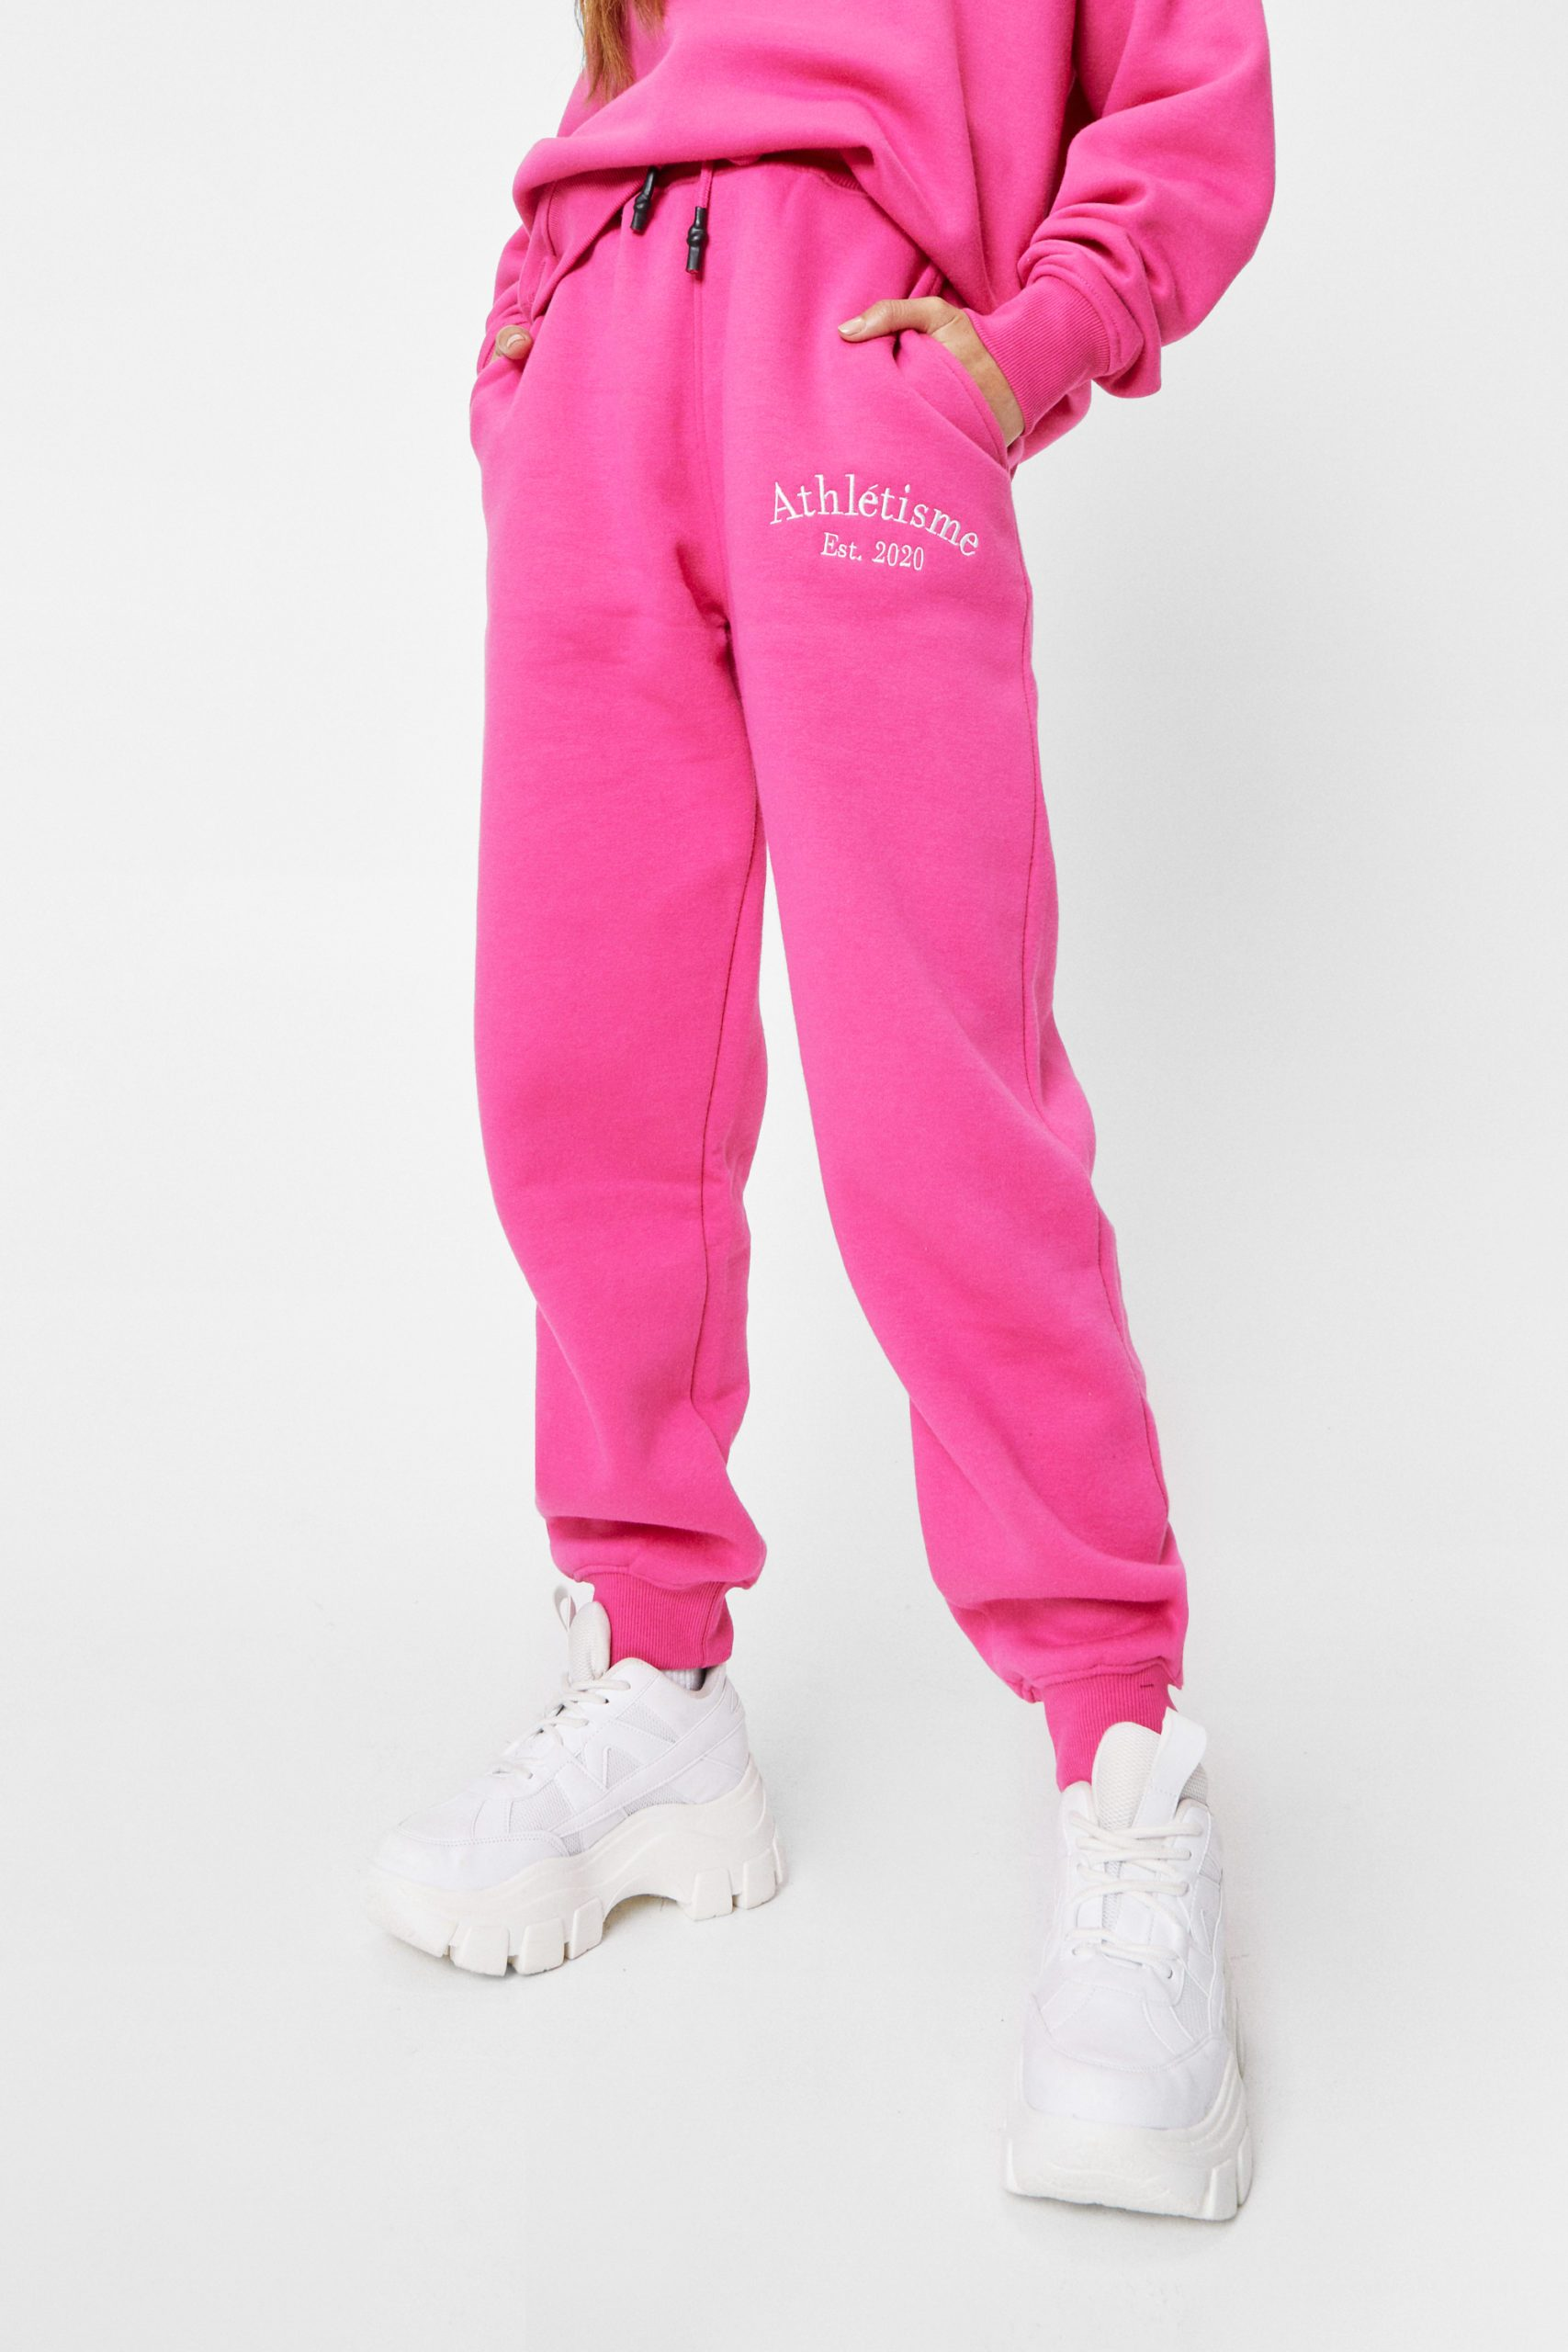 Petite Athletisme Embroidered Joggers